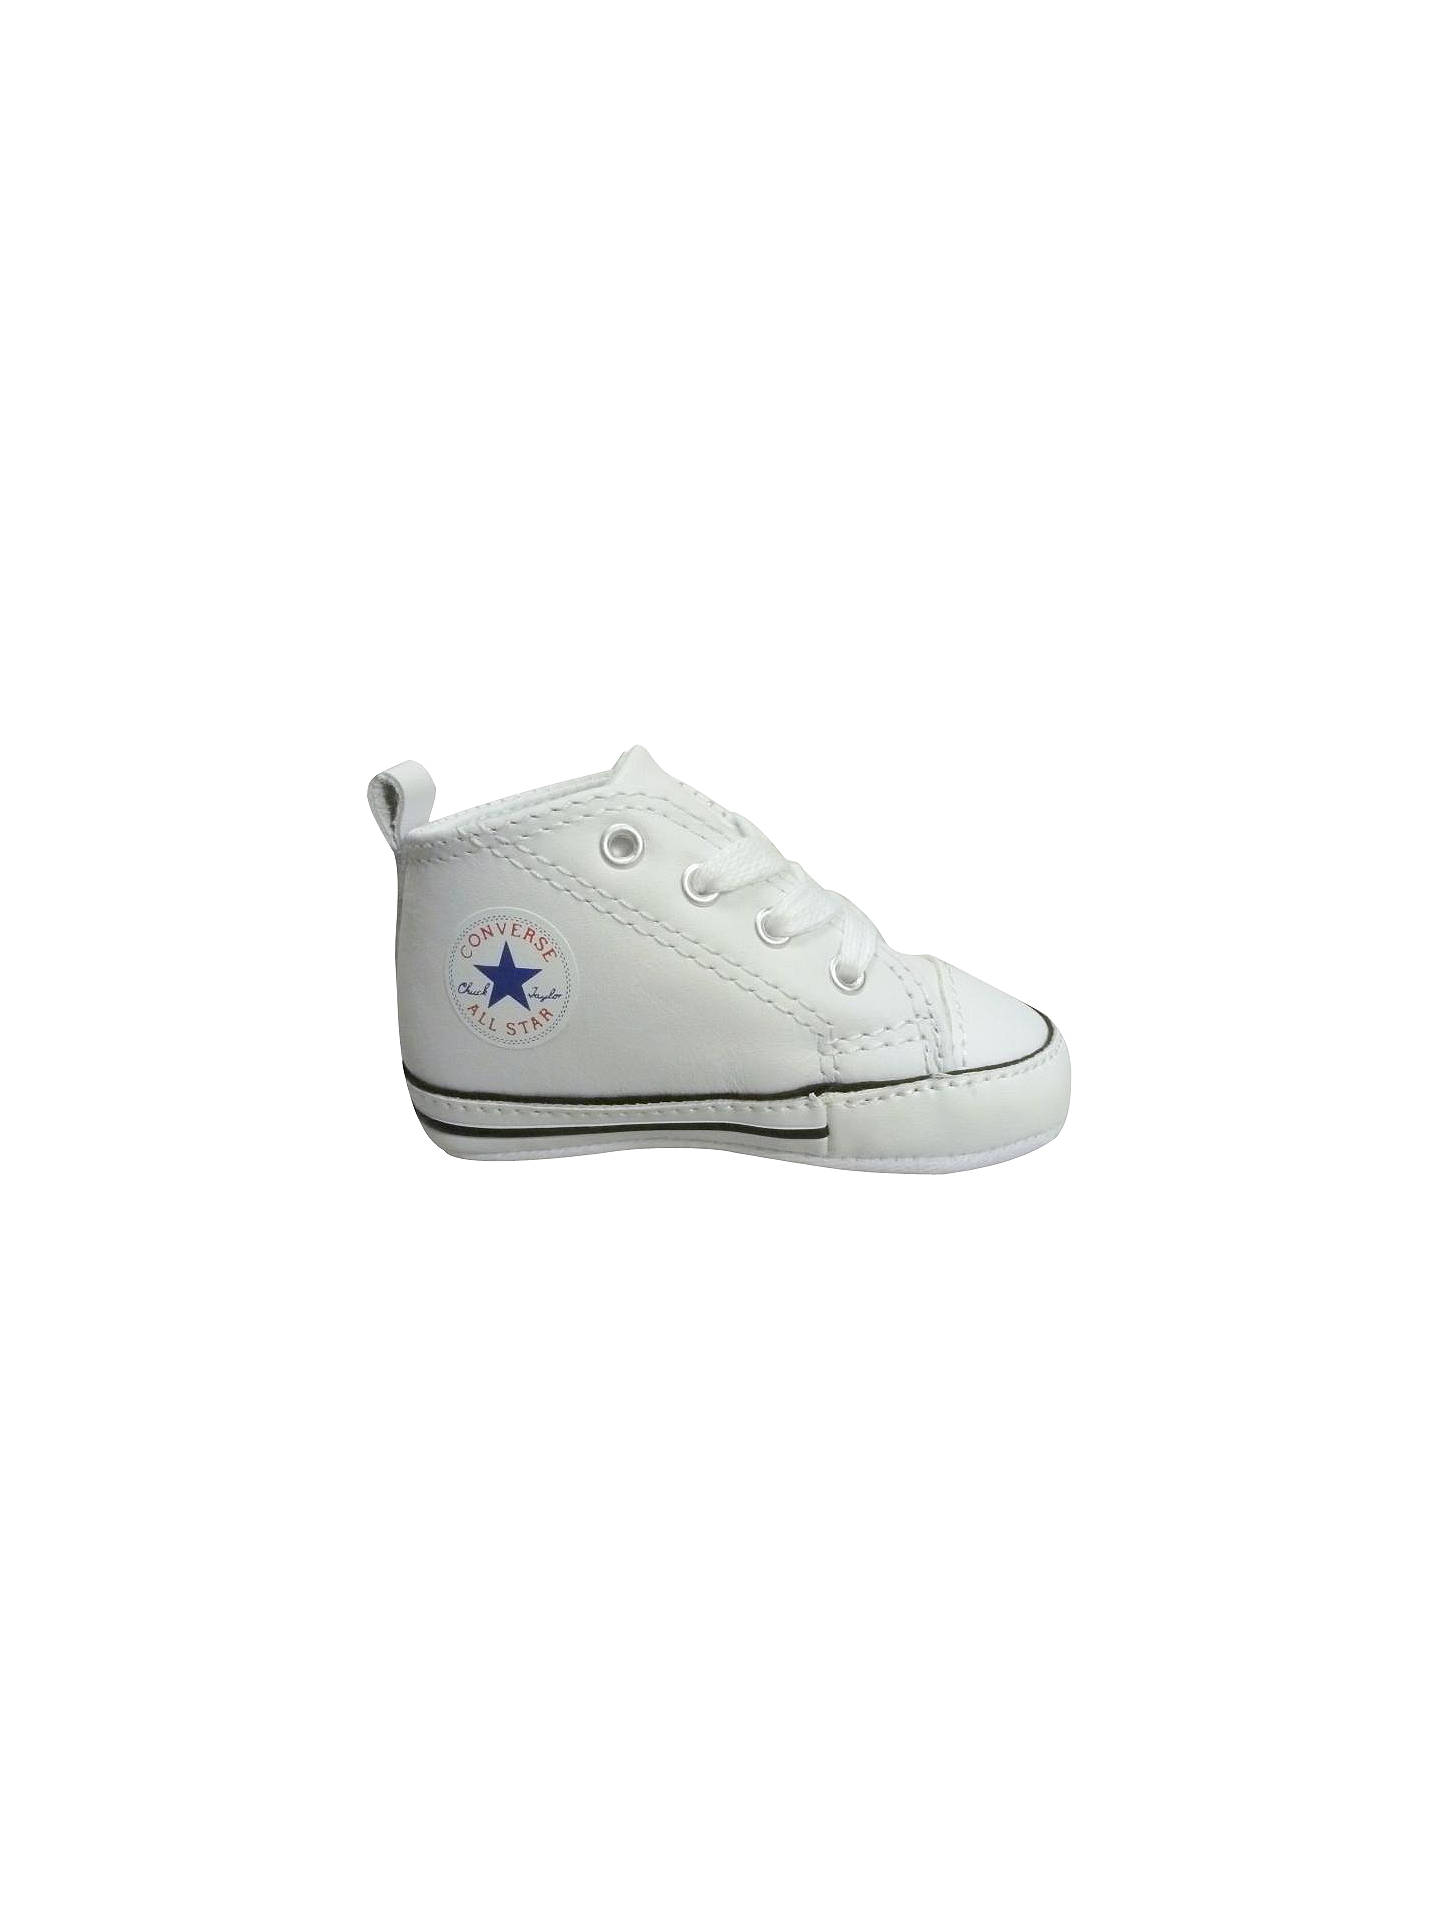 929488e167 Converse Children s First Star Trainers at John Lewis   Partners